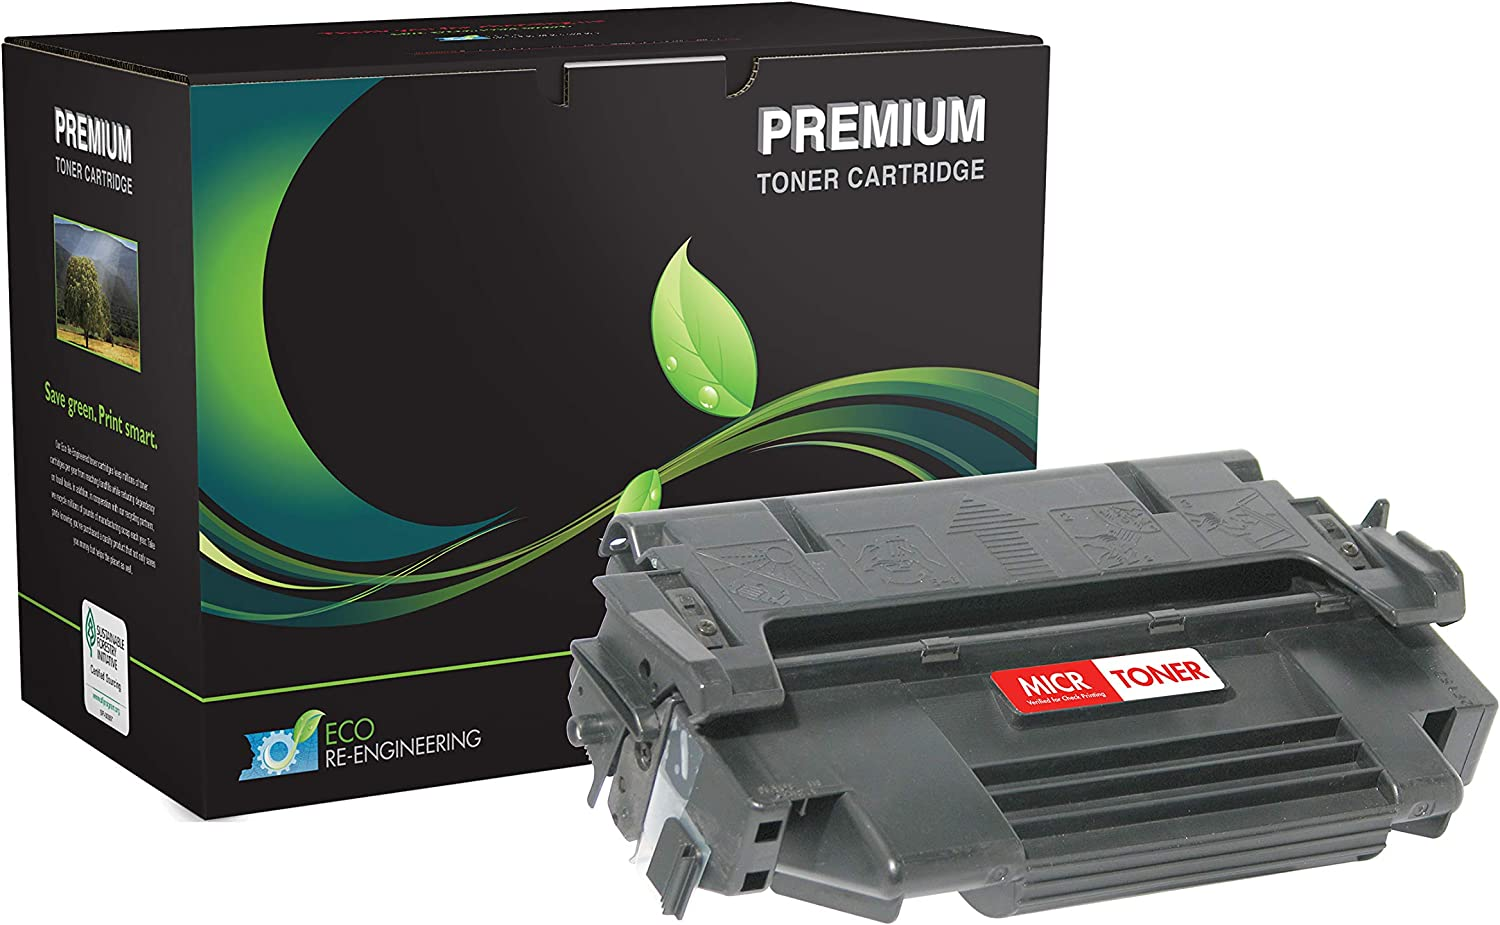 Inksters Remanufactured Toner Cartridge Replacement for HP 98A Univ Toner MICR 92298A MICR / M2473G/A MICR / TN9000 MICR for Laserjet 4 4M 4+ 4M+ 5 5M 5N 5Se (EX) 02-17310-001 (Black)